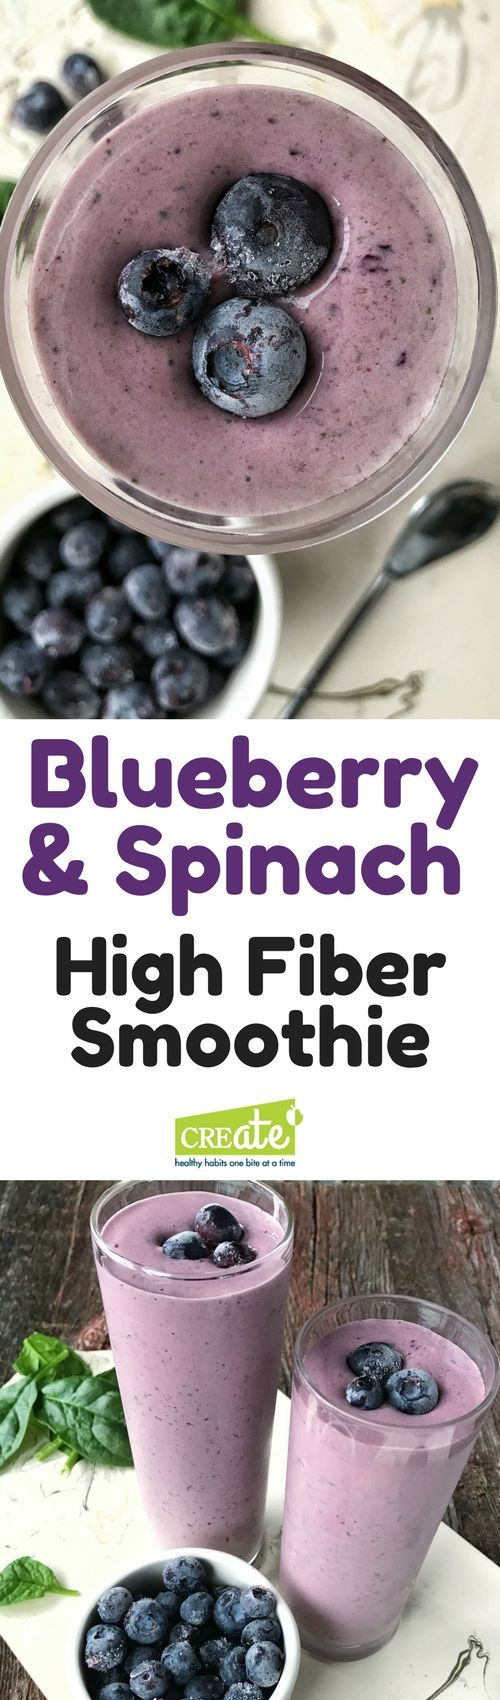 High Fiber Recipes: A superfood smoothie that is packed with nutrition. Blueberries, banana, and spinach blend together in a delicious and high fiber smoothie perfect for breakfast. Made with yogurt and honey, this is a must try recipe. A high fiber meal. via createkidsclub.com via @http://www.pinterest.com/createkidsclub